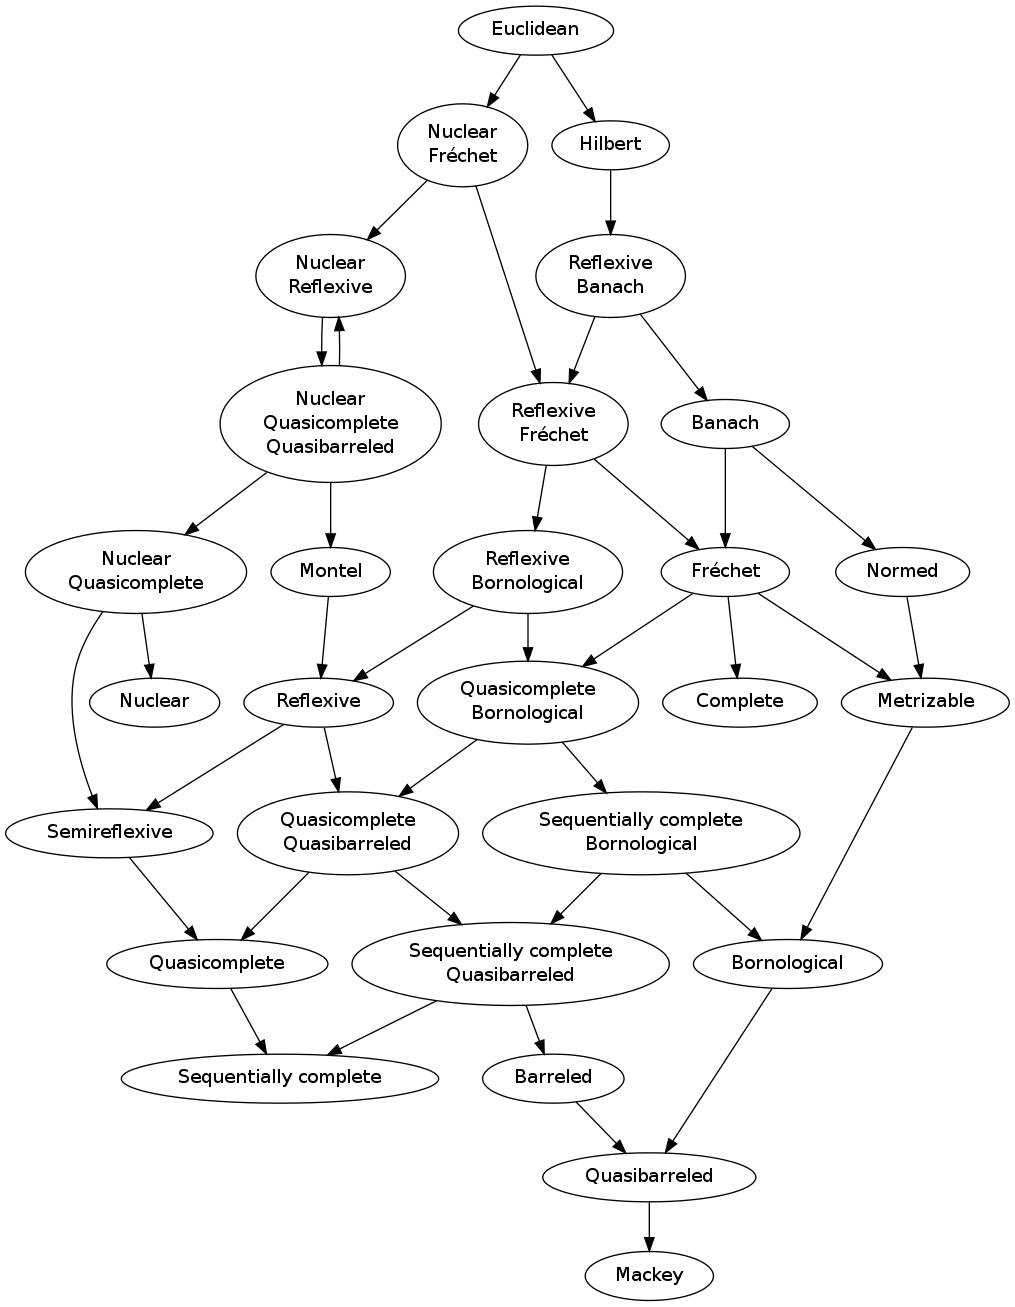 see the graphviz file for a text version of this diagram